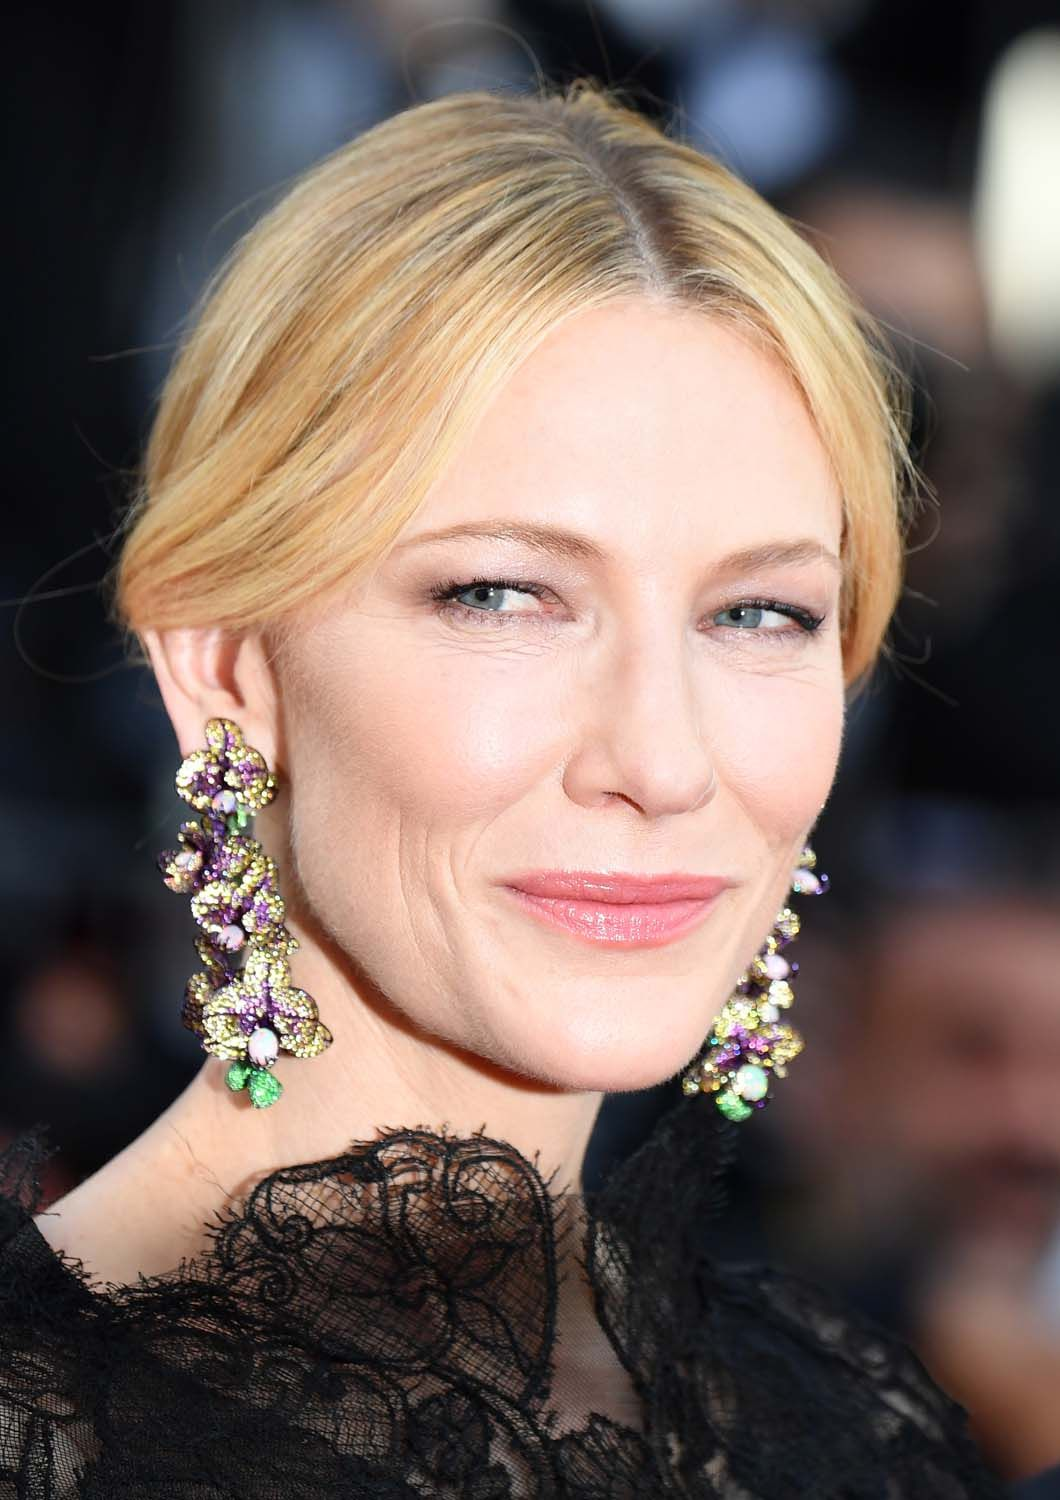 Jury president Cate Blanchett wore orchid-shaped earrings from Chopard's Red Carpet Collection for the first red carpet at the 71st Cannes Film Festival.